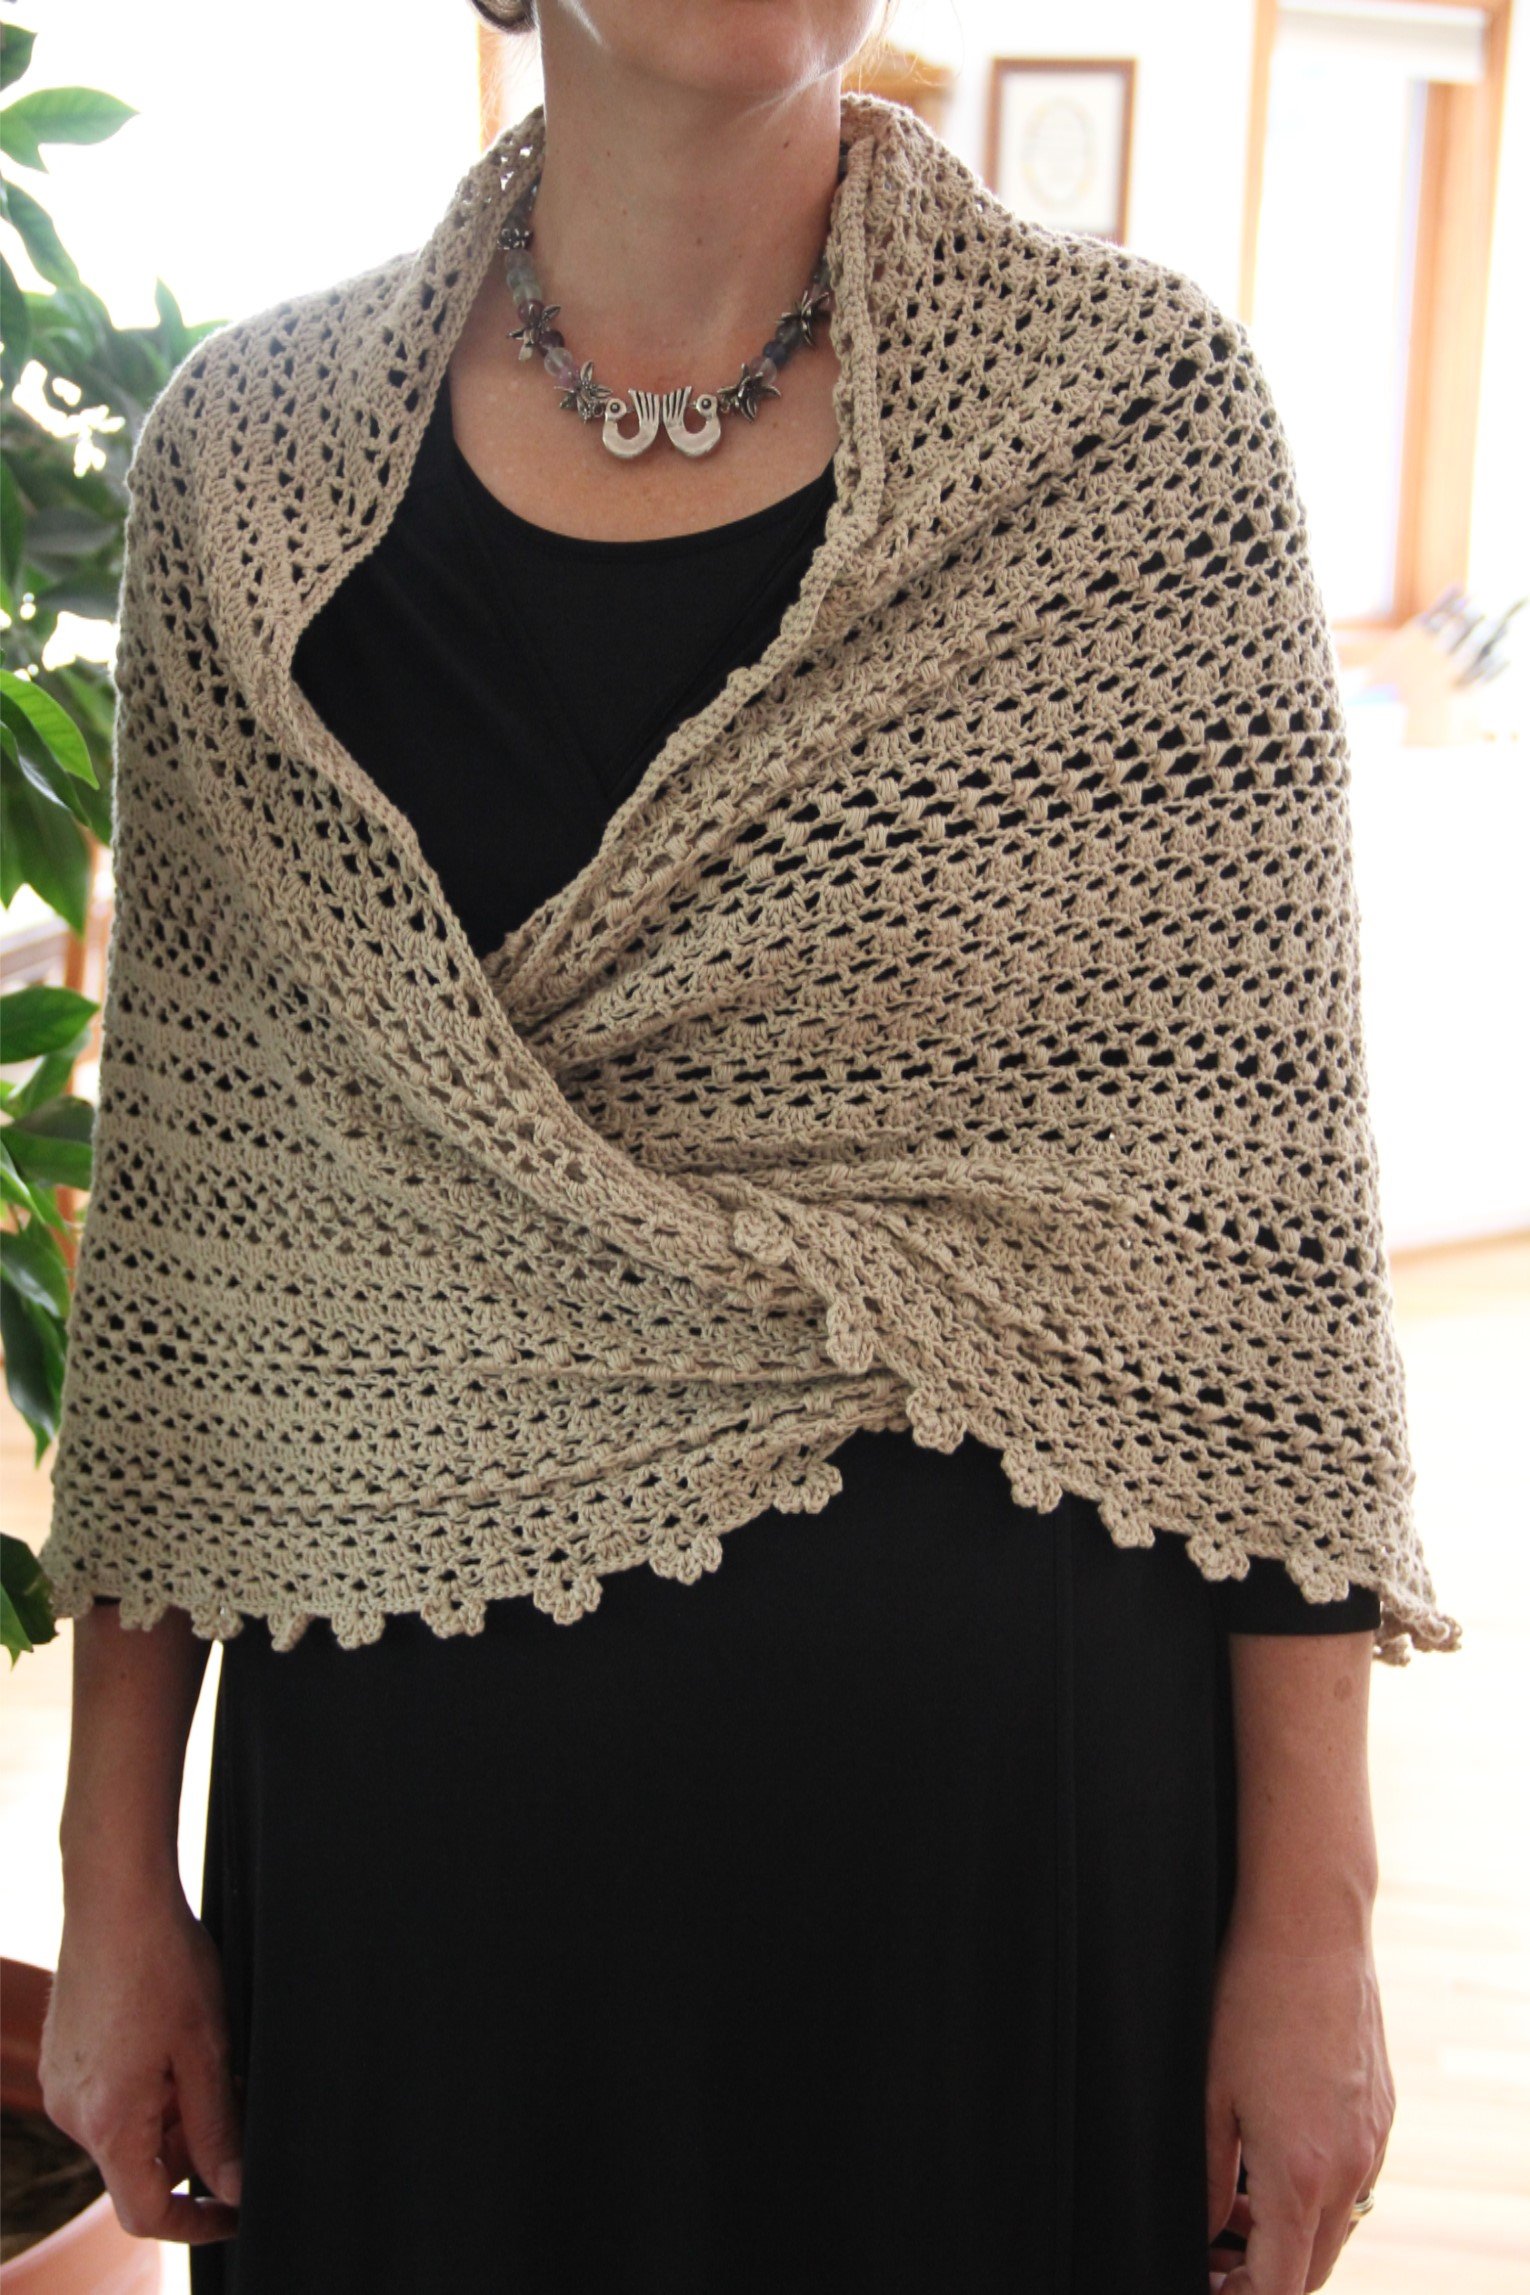 Crochet Shawl Pattern : Free Crochet Shawl Pattern Worked In A Basic Trellis Pattern Pictures ...